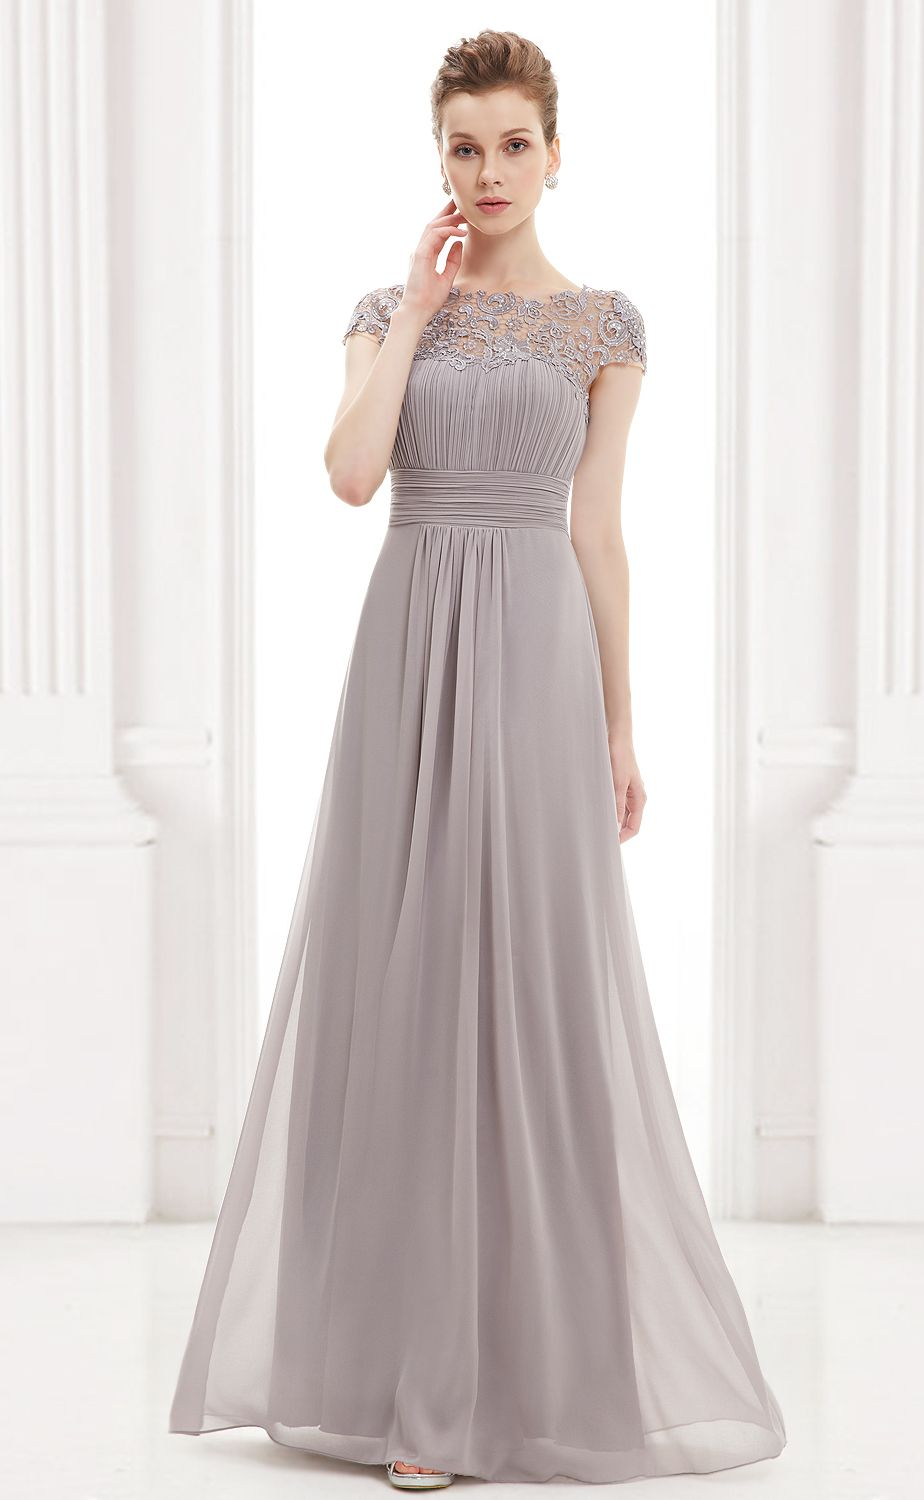 Lace Cap Sleeve Evening Gown | Favorite Dresses | Pinterest | Gray ...